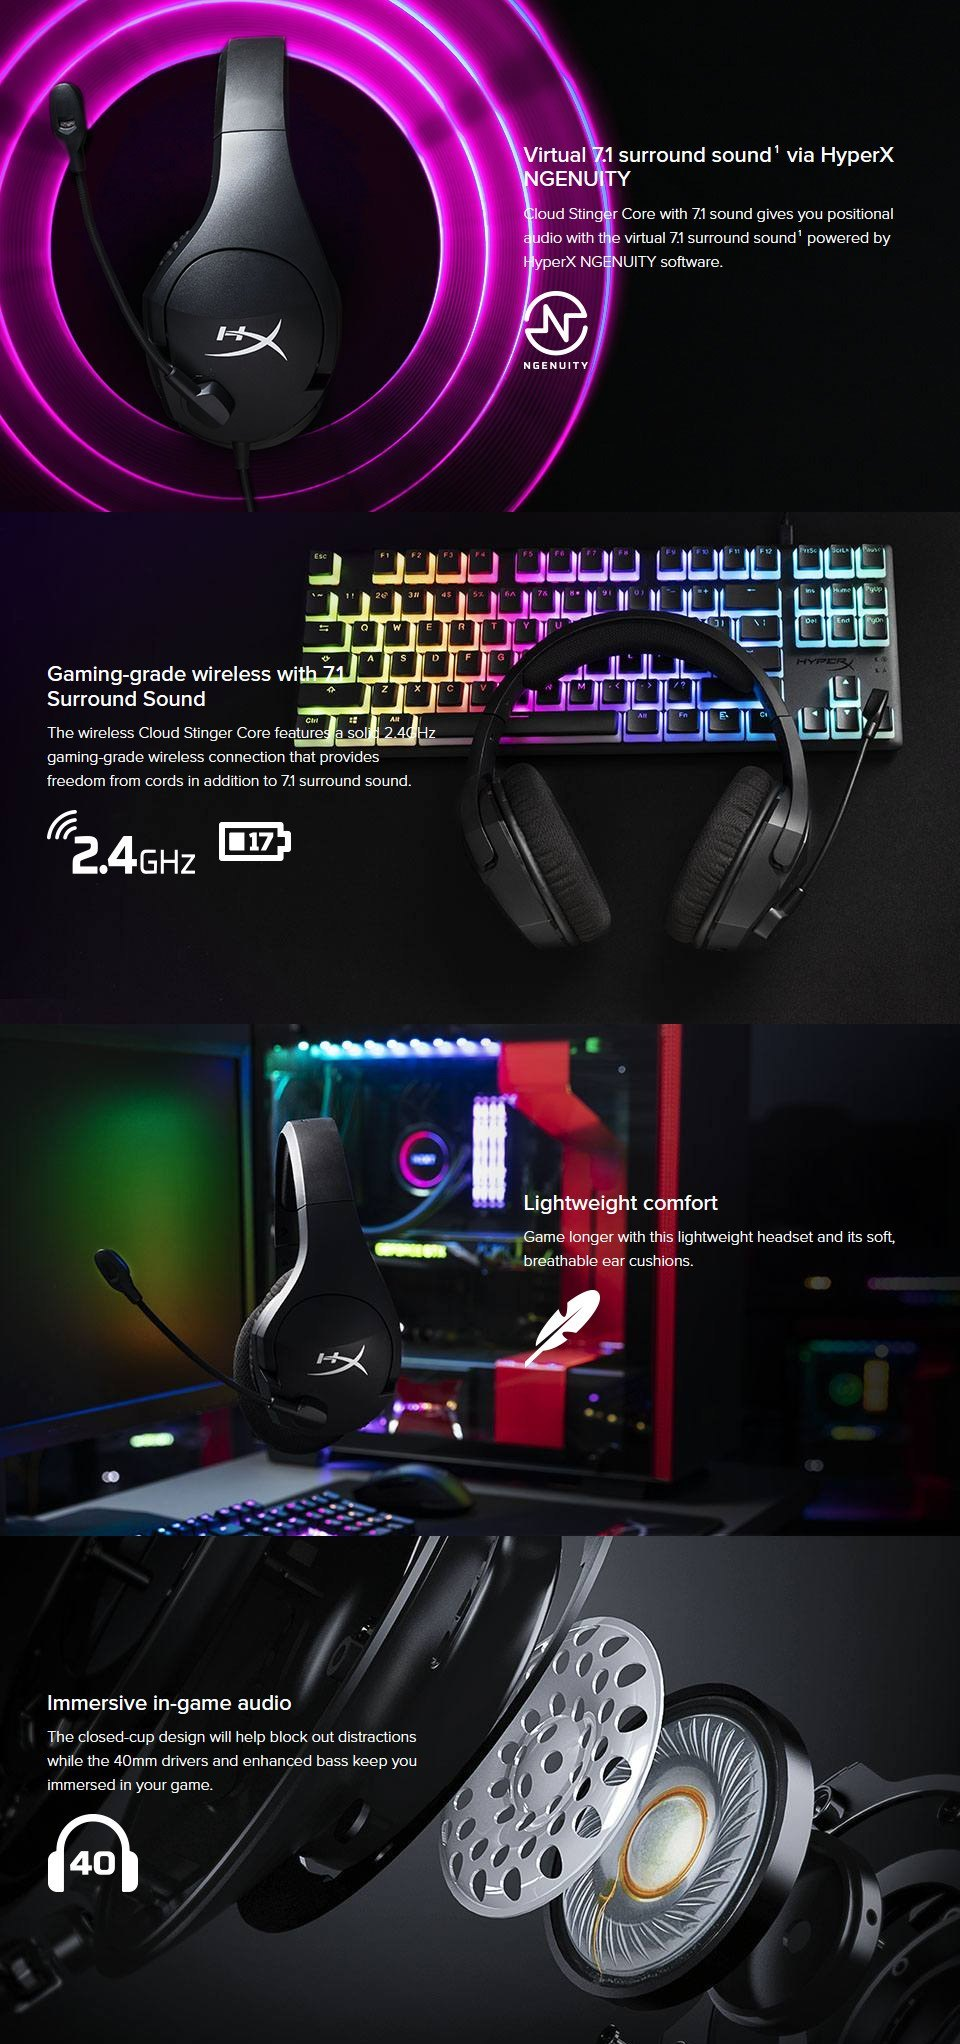 HyperX Cloud Stinger Core Wireless 7.1 Gaming Headset features